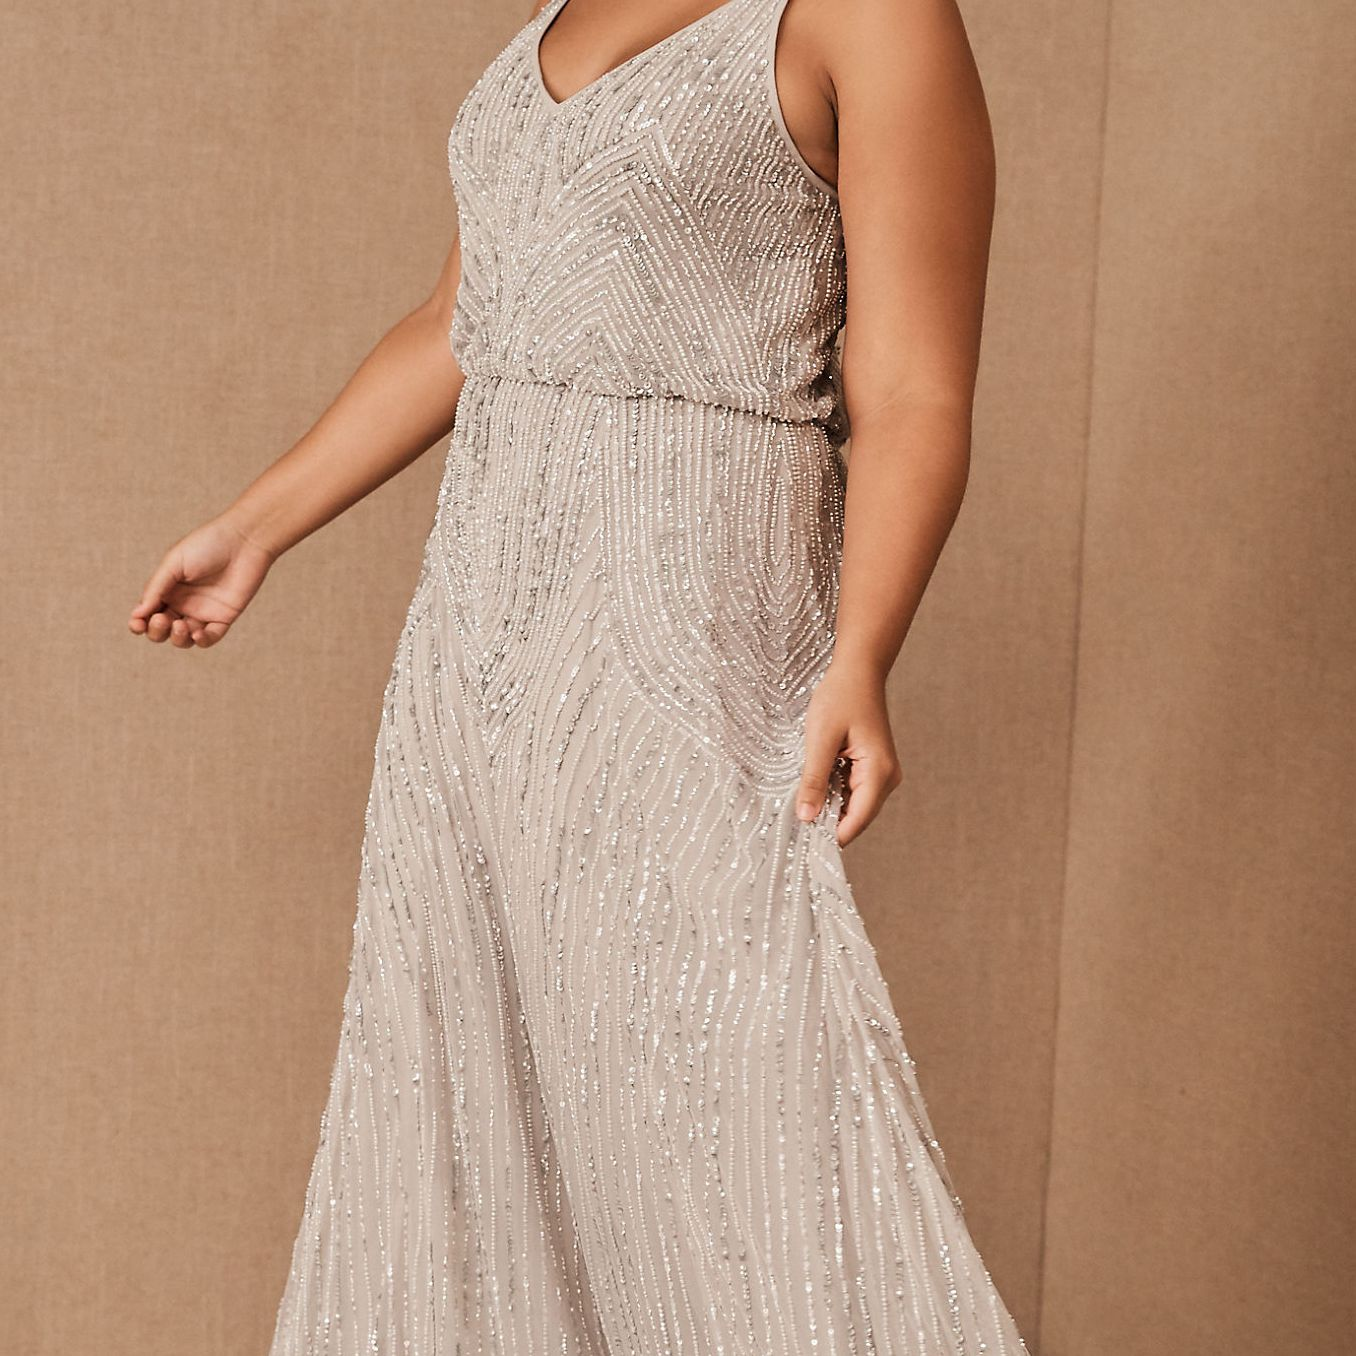 20 Best Plus Size Mother of the Groom Dresses of 20